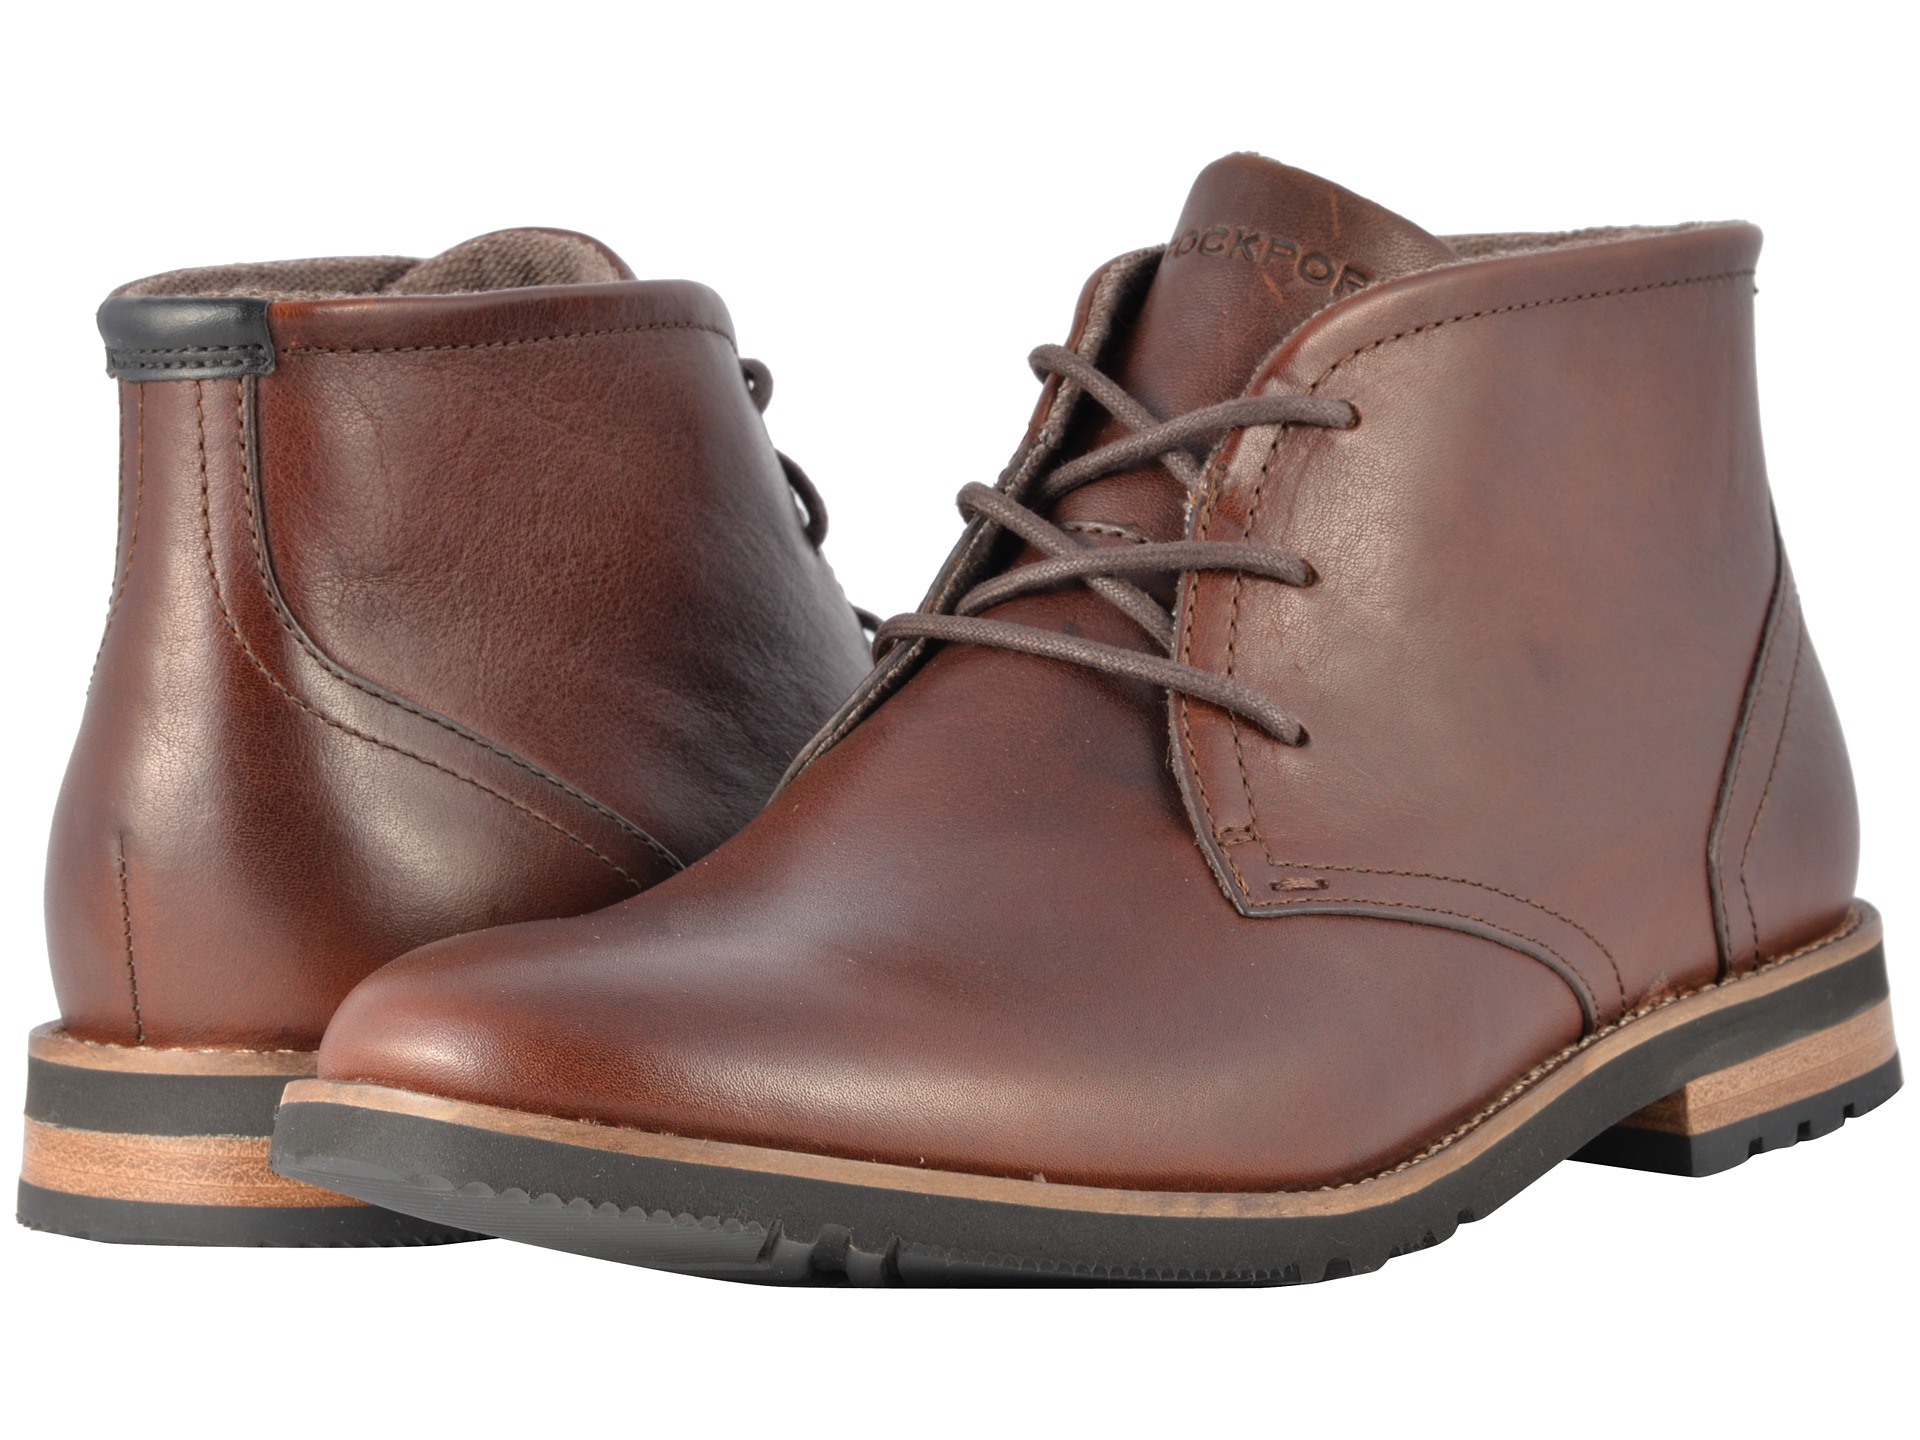 Chukka Boot, Shoes | Shipped Free at Zappos